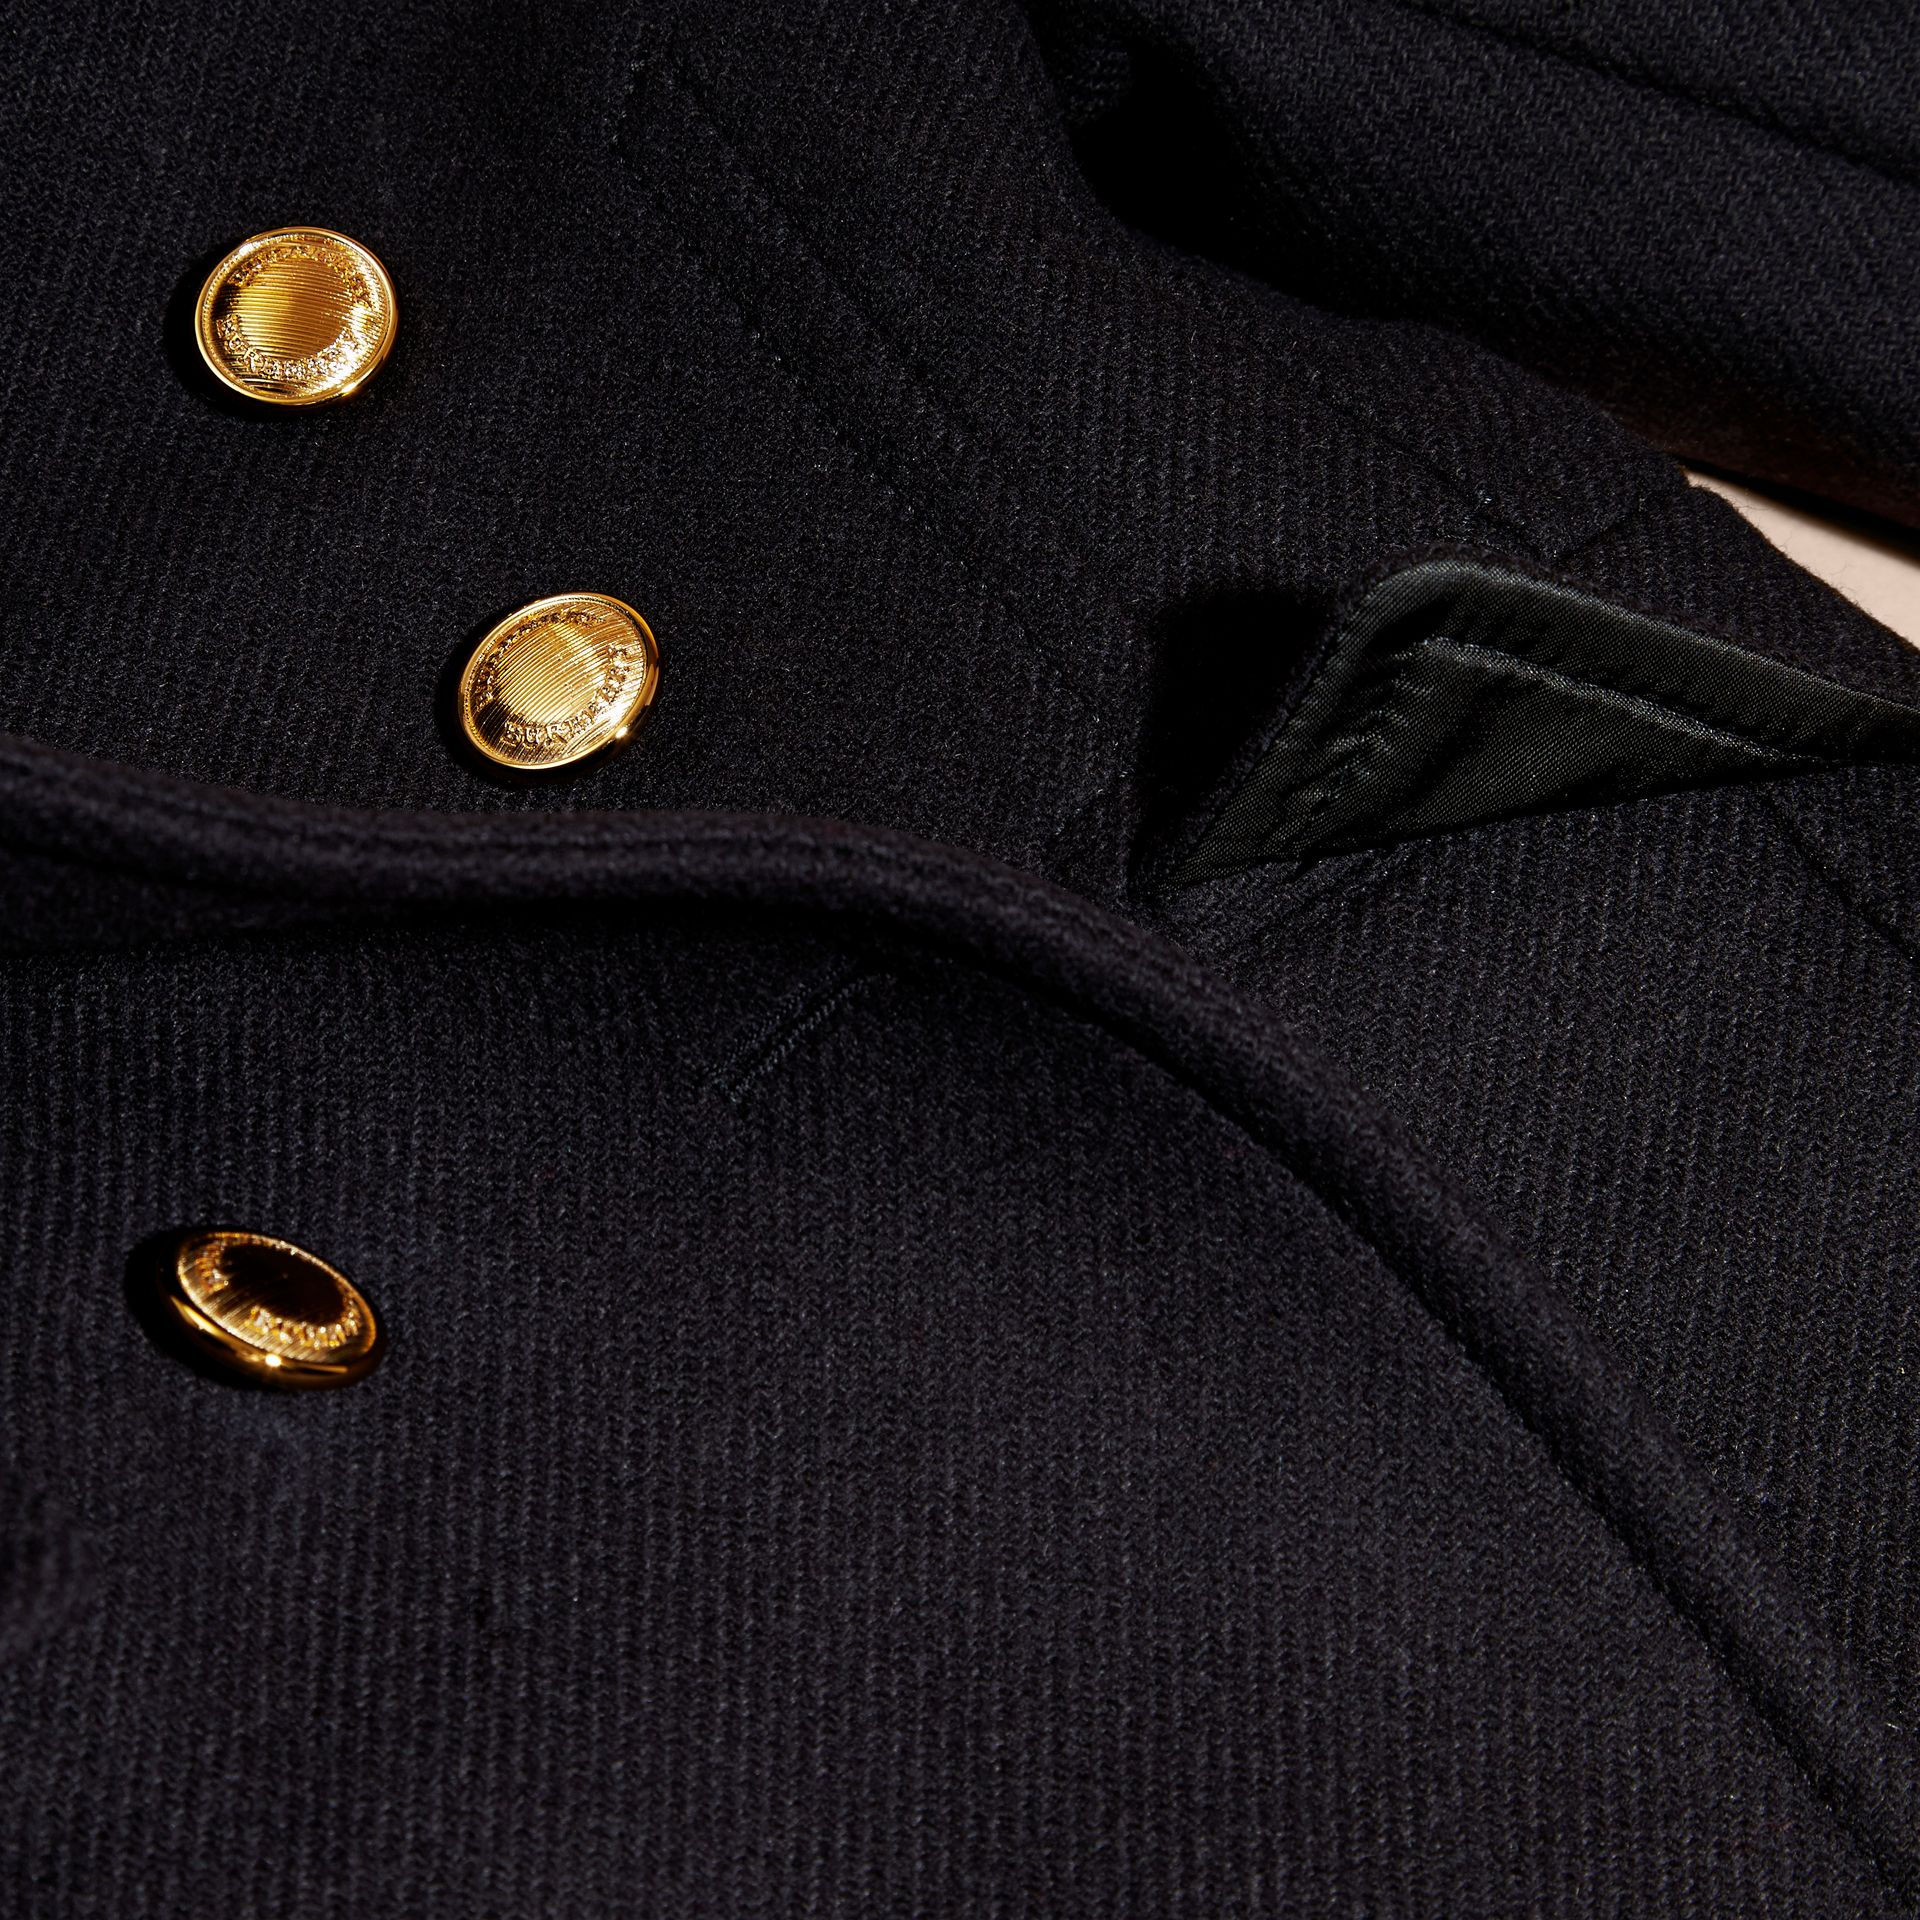 Navy Wool Cashmere Blend Tailored Coat with Domed Buttons - gallery image 2